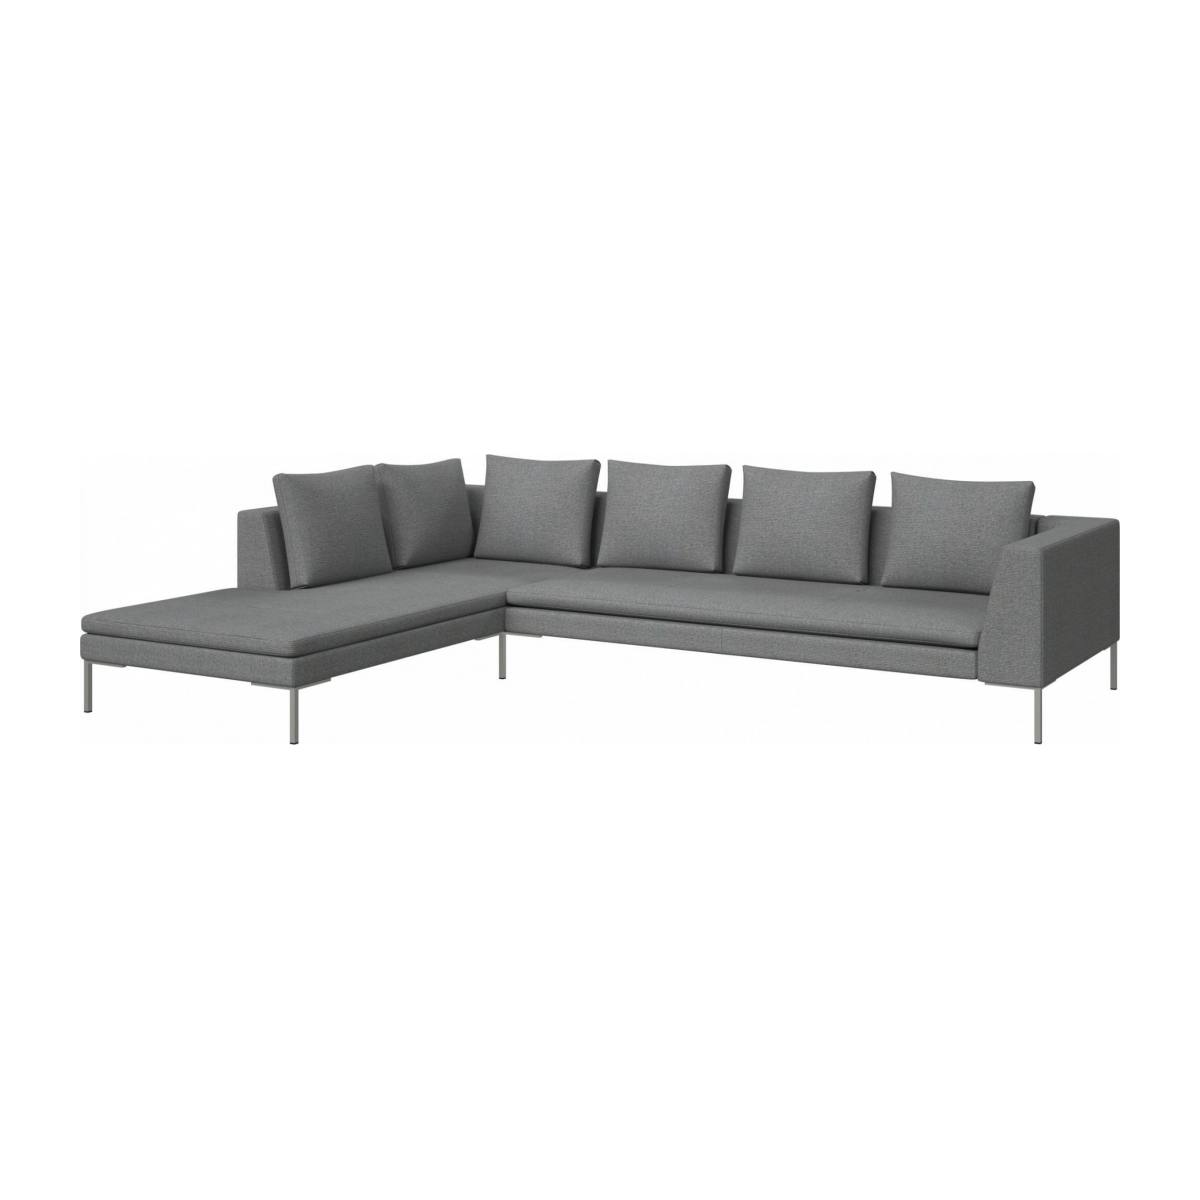 3 seater sofa with chaise longue on the left in Lecce fabric, blue reef  n°2